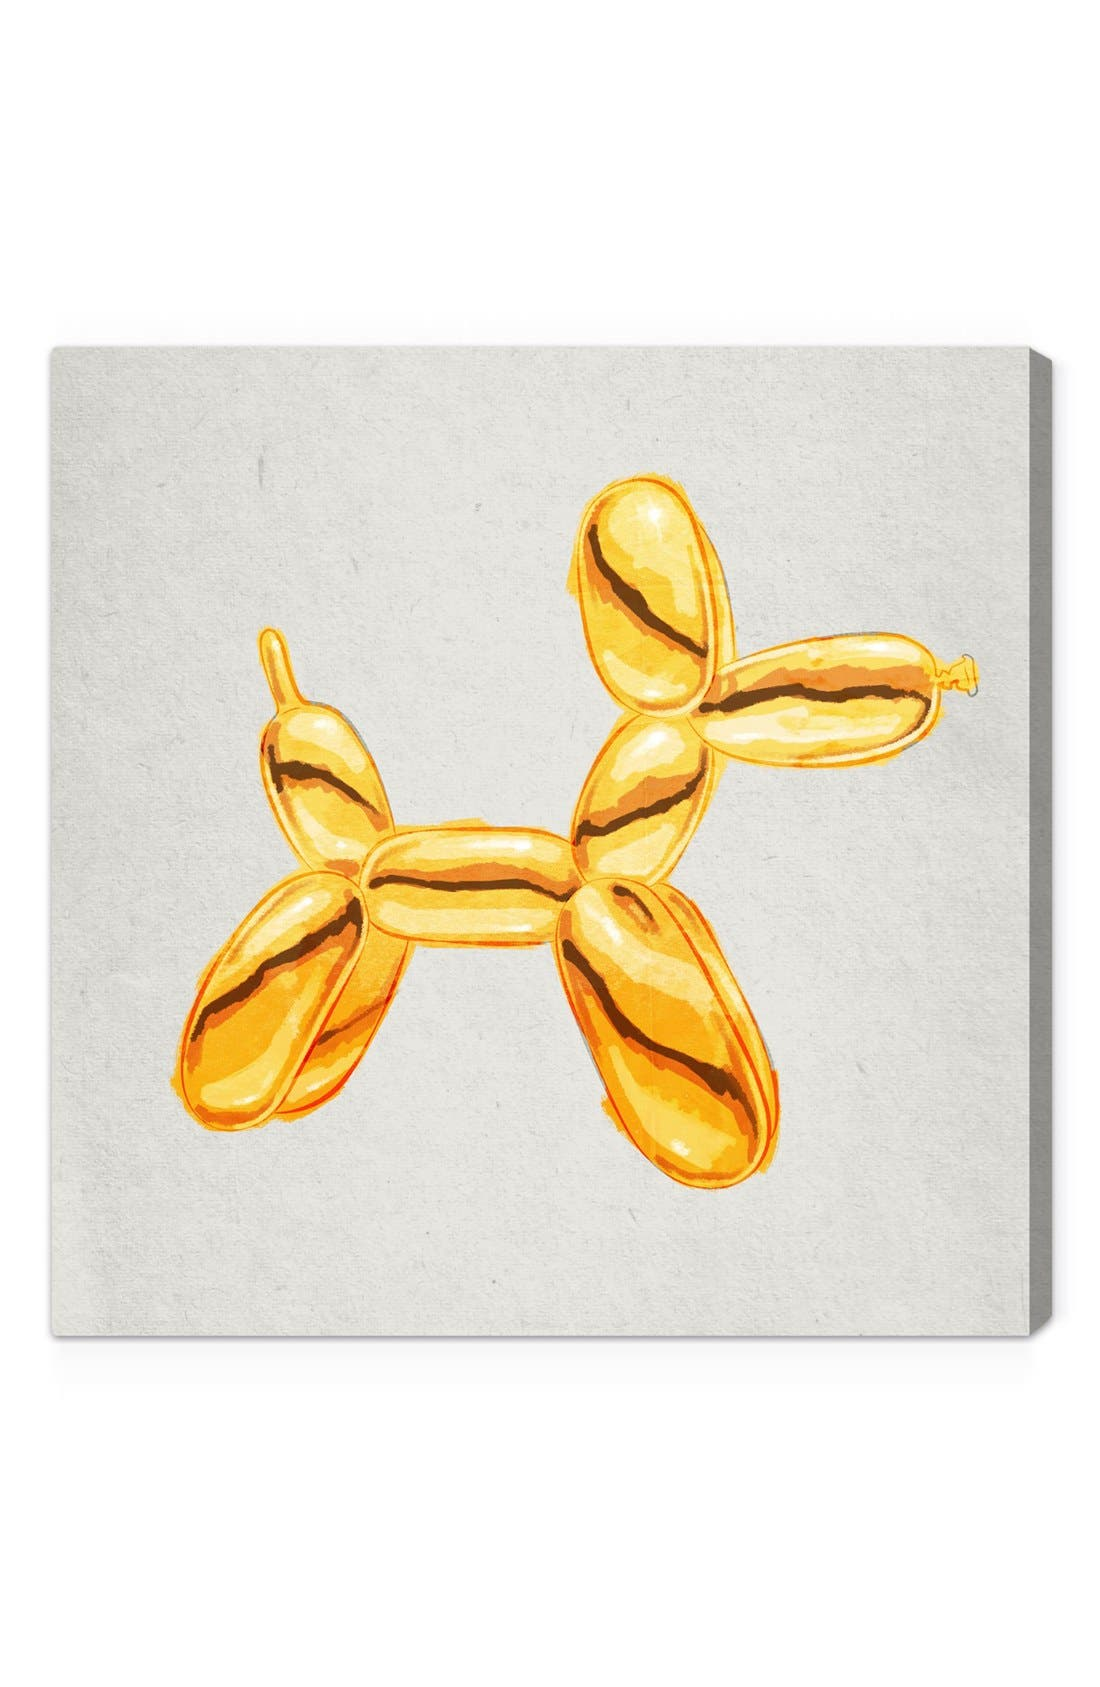 Oliver Gal 'Balloon Dog Lux' Wall Art